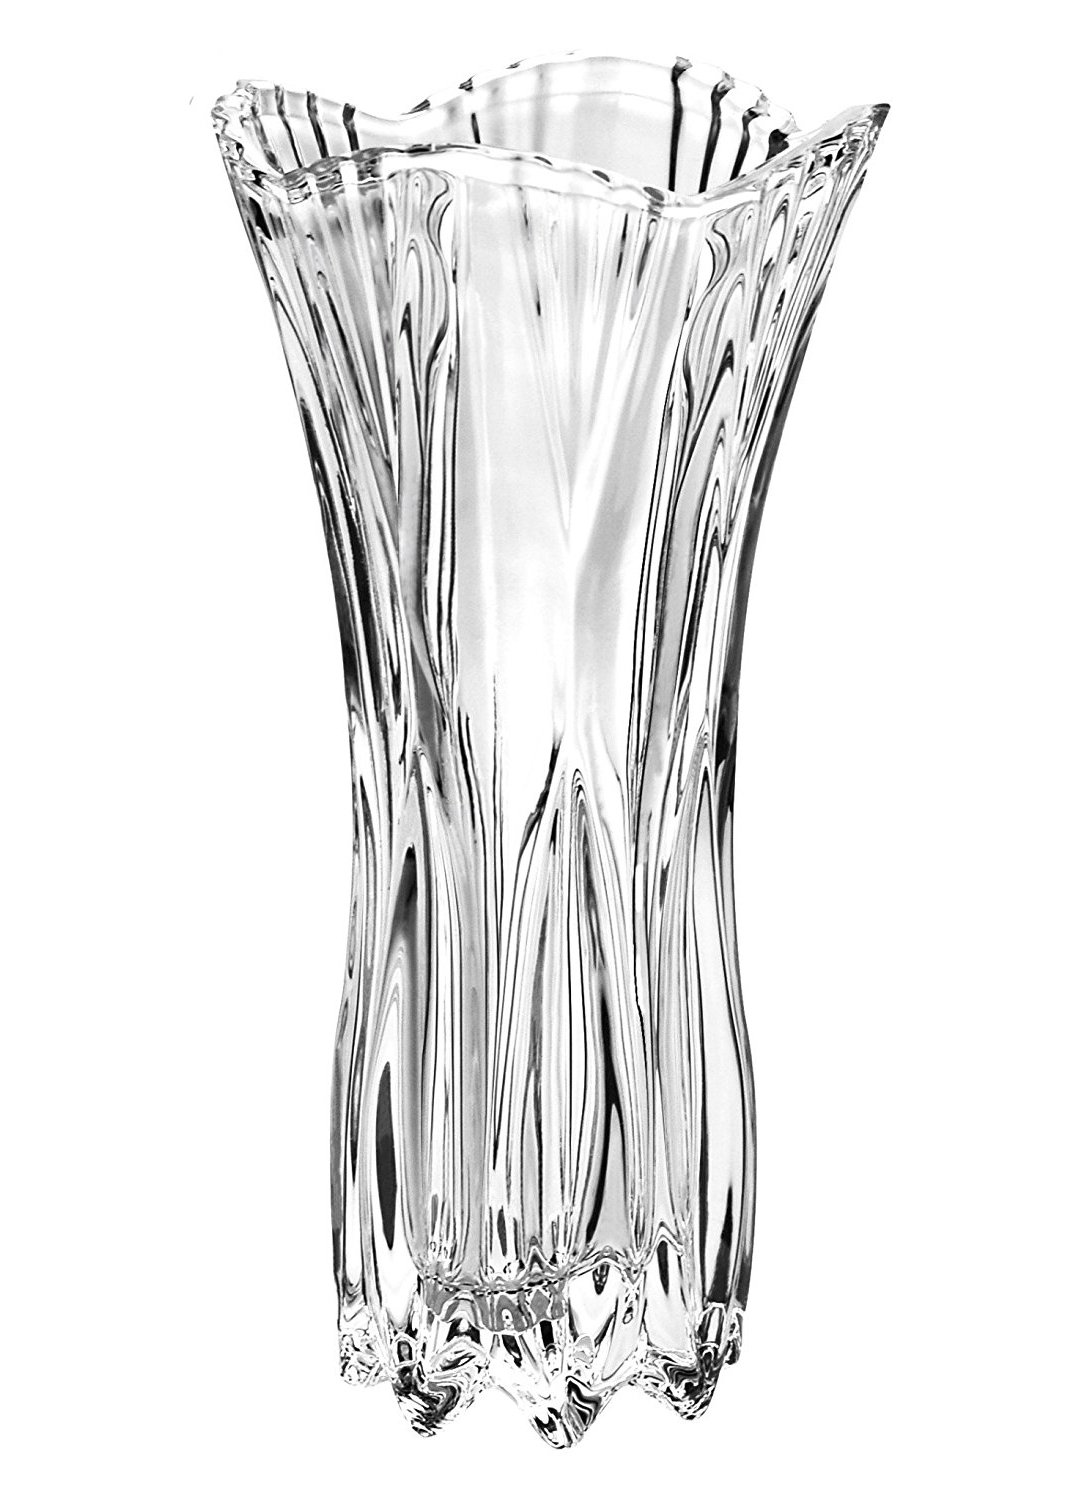 Crystal flower vase - 29 cm Large Decorative Tall Flower Vase / Glass Flower Vase by Kurtzy - Crystal Vases for Flowers - 15.5cm Diameter for Assorted Bunches of Flowers - Crystal Clear Glass MA-3691